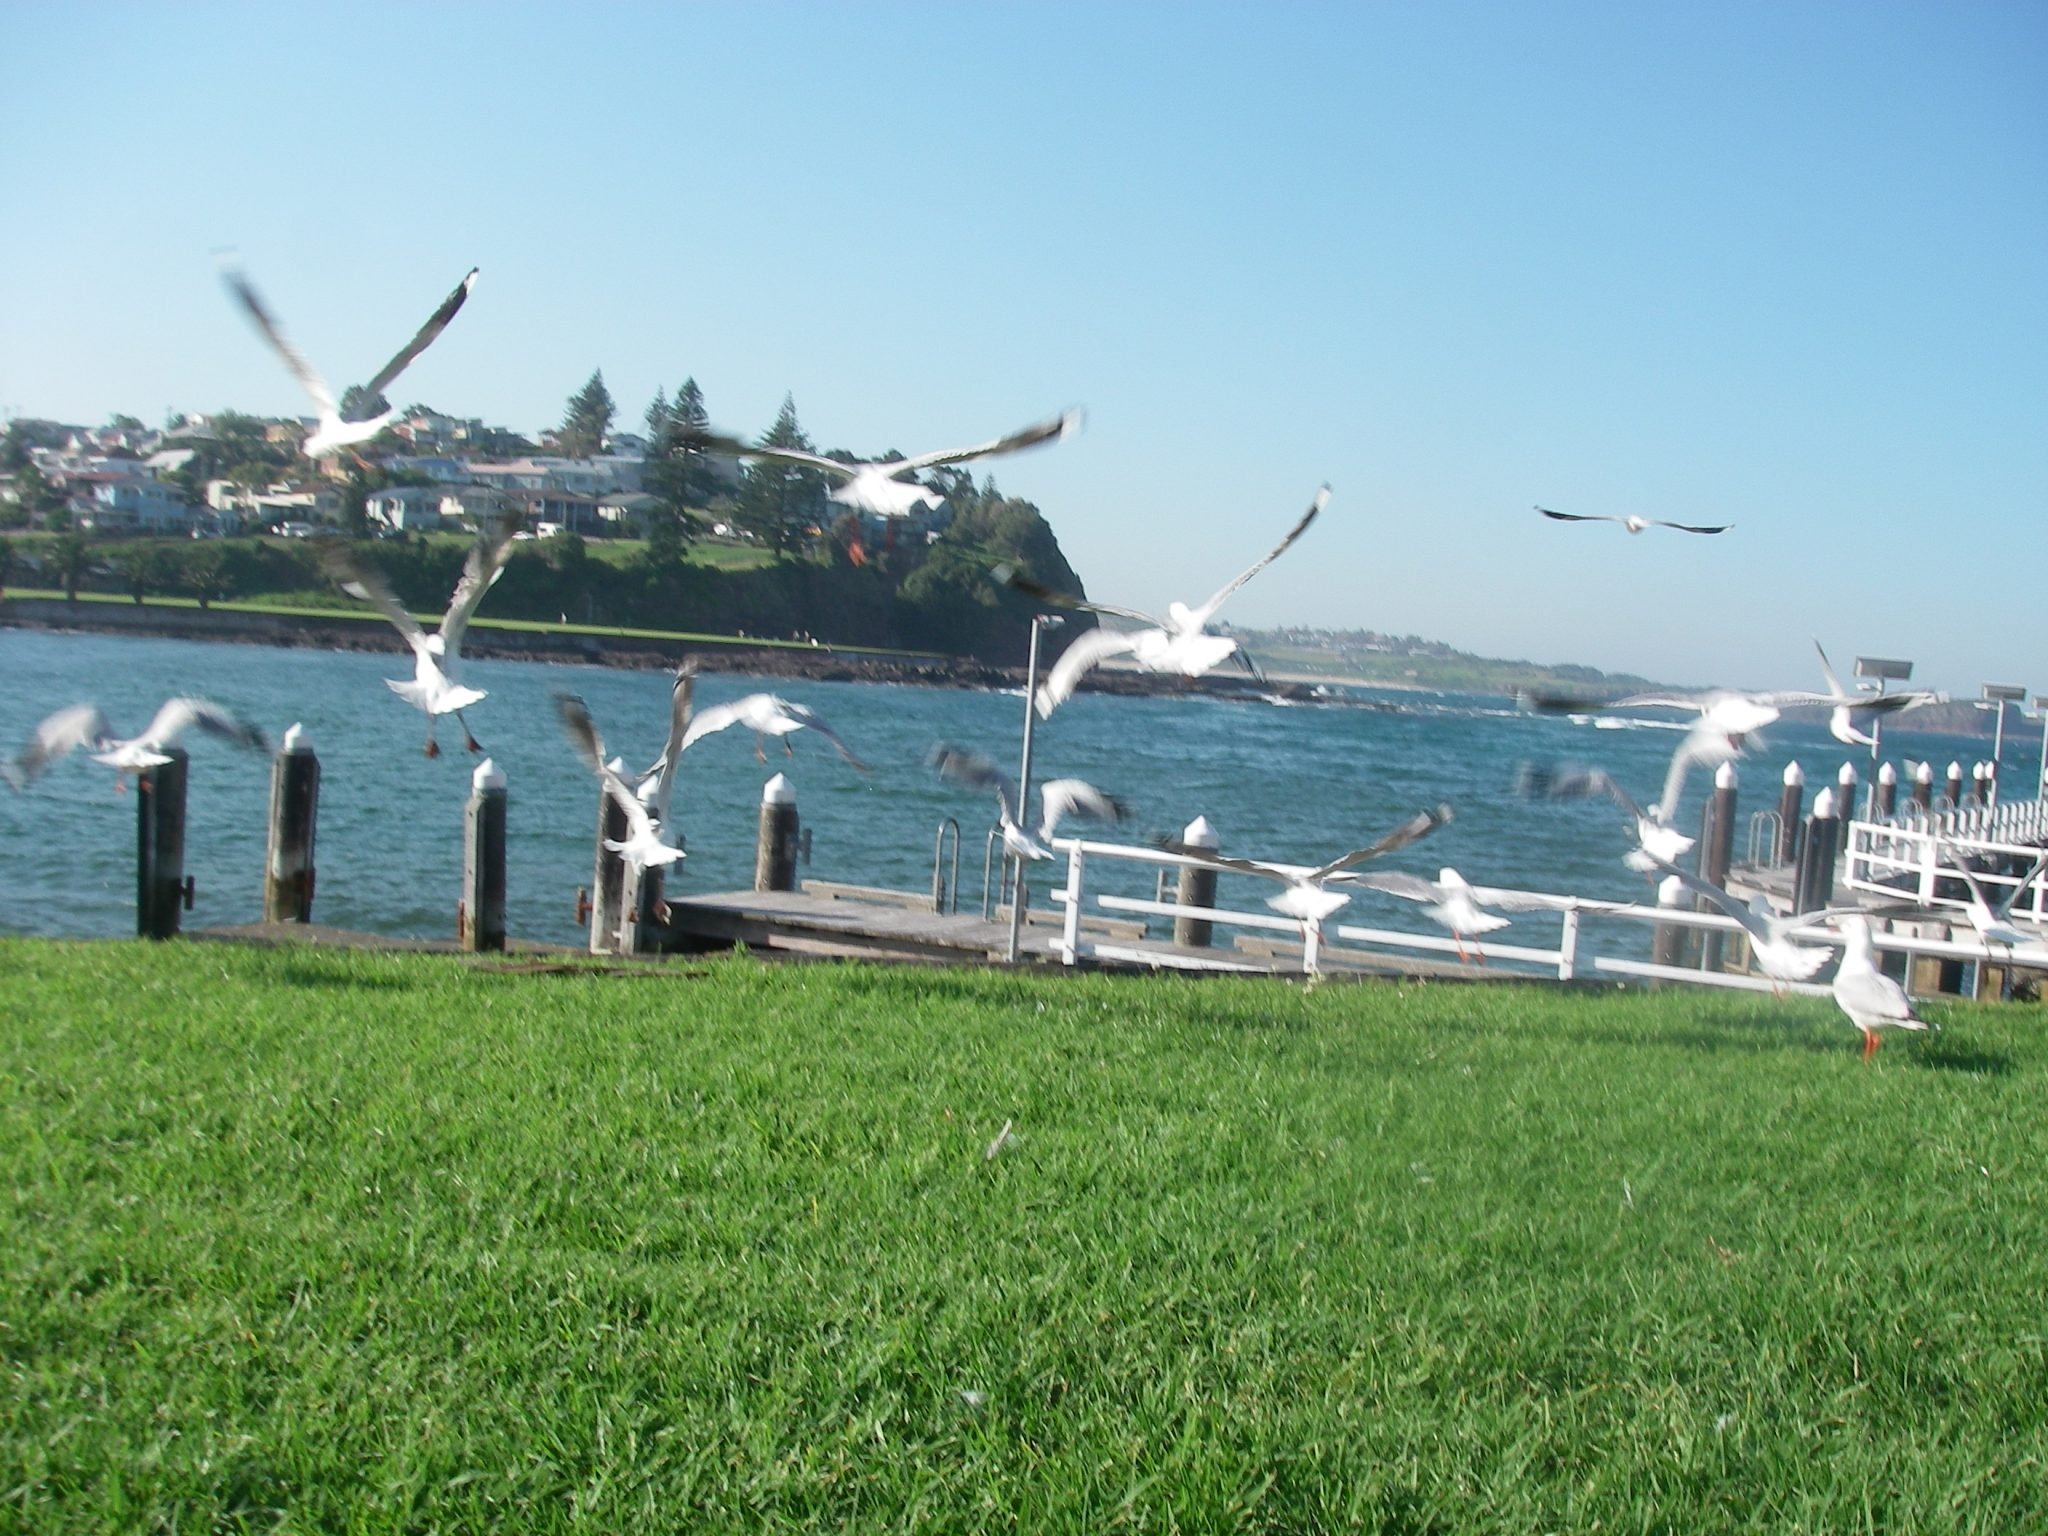 112.2. Flying seagulls at Garringong, Australia,